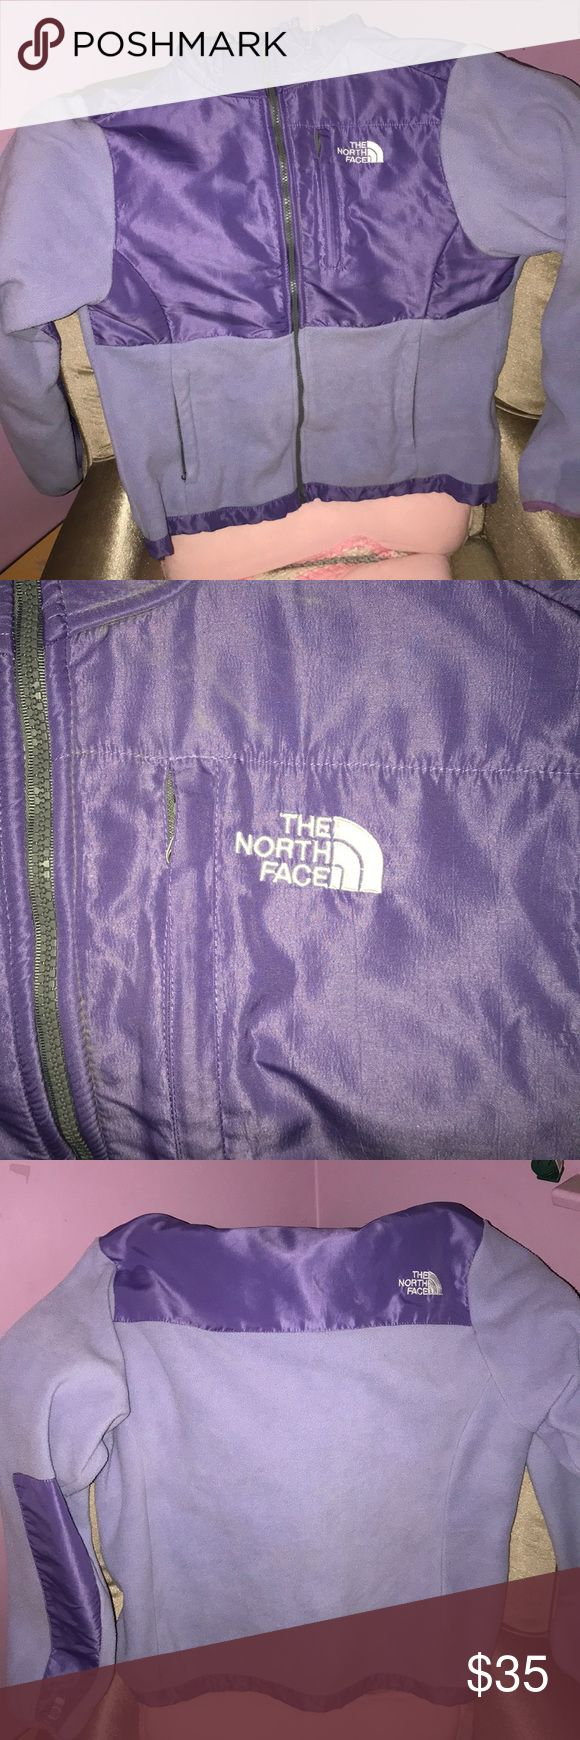 Northface jacket Lilac northface with darker purple chest and elbows. Bought on here and it sadly doesn't fit like my other ones does so I'm just trying to get back what I paid for it. There are no stains or marks on this it's in great condition. XL women's The North Face Jackets & Coats